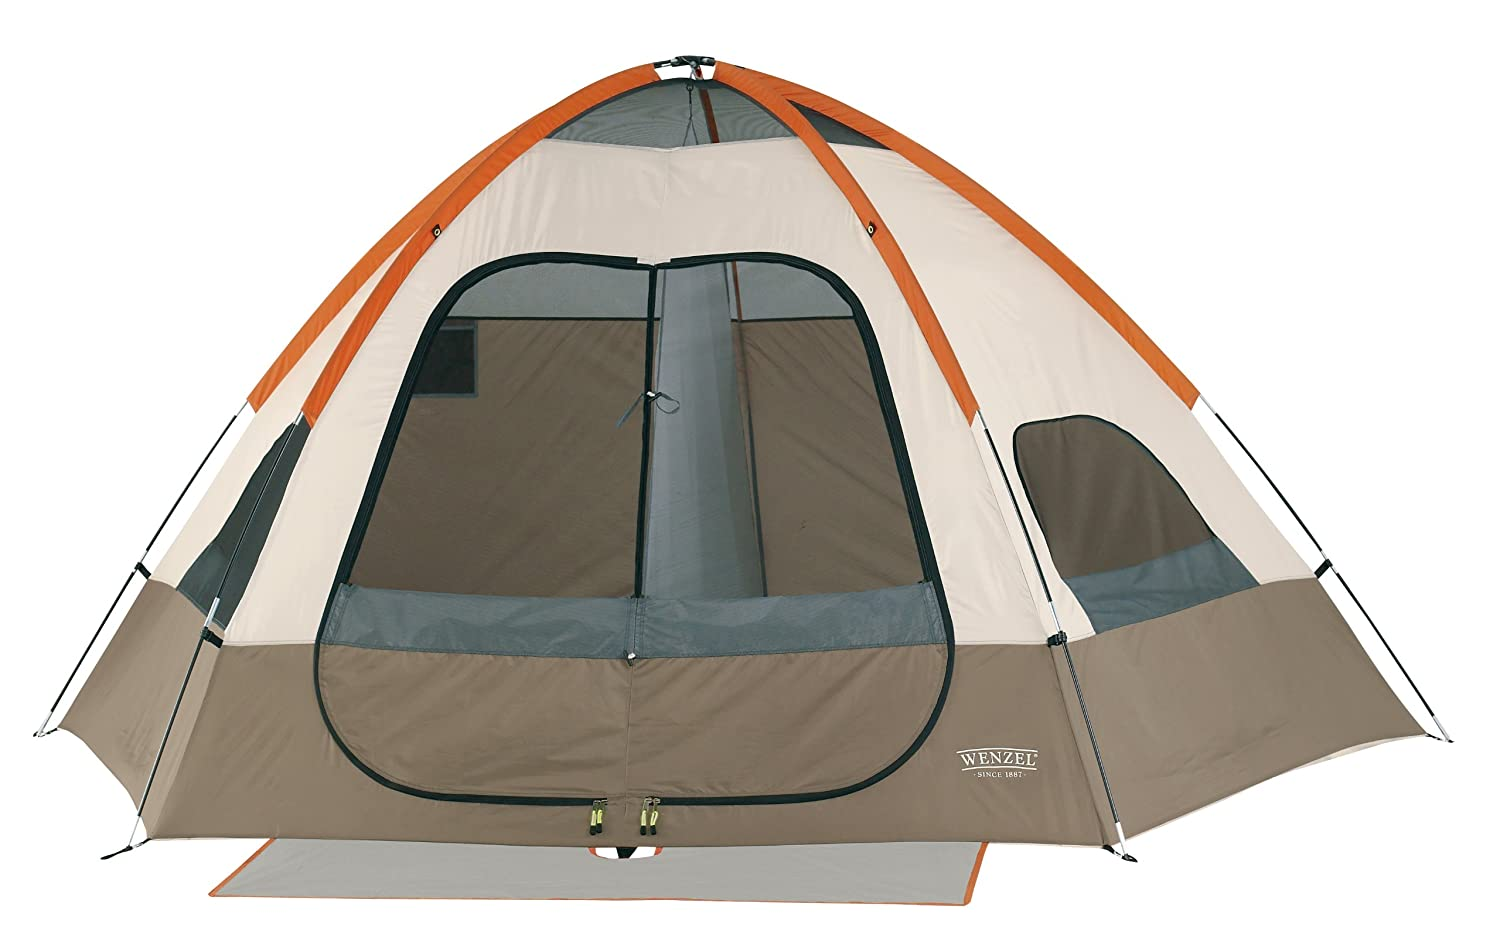 Amazon.com  Wenzel Big Bend 12-by-10 Foot Five-Person Two-Room Family Dome Tent  Sports u0026 Outdoors  sc 1 st  Amazon.com : wenzel klondike family tent - memphite.com